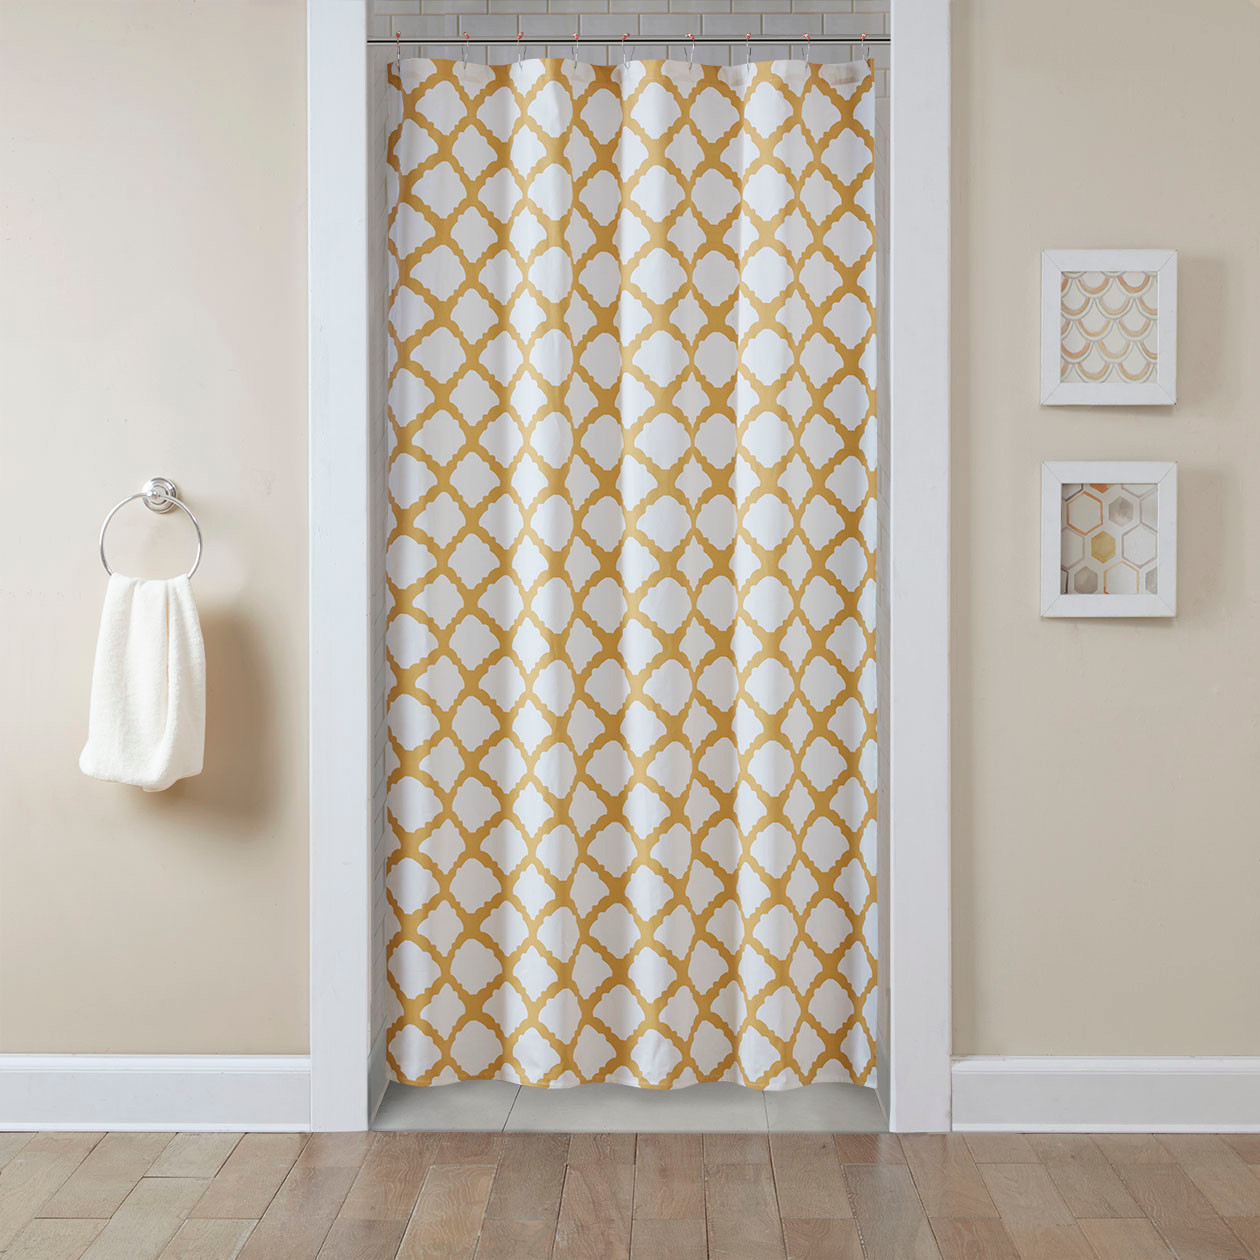 Stall Curtains. Shower Curtains   Shower Curtain Tracks   Bed Bath   Beyond